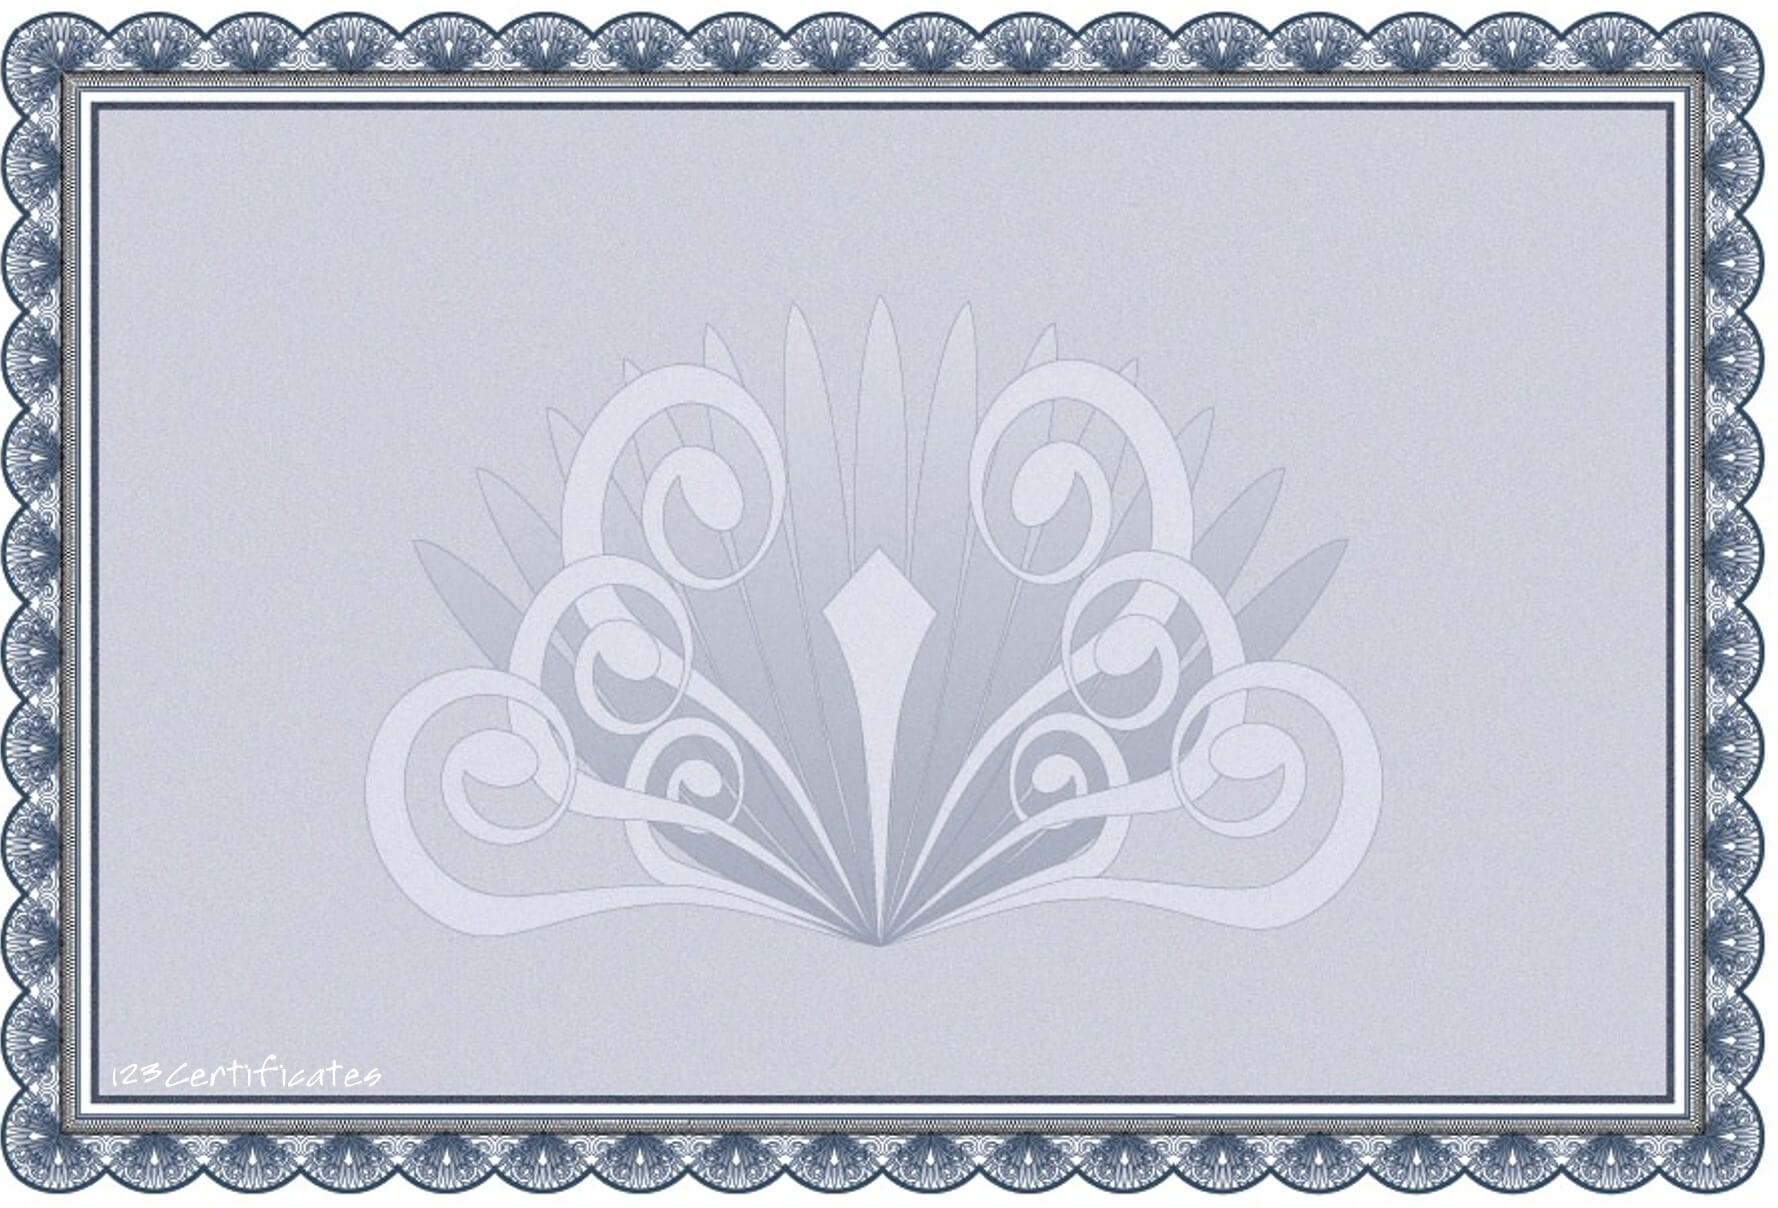 Free Certificate Borders To Download throughout Landscape Certificate Templates